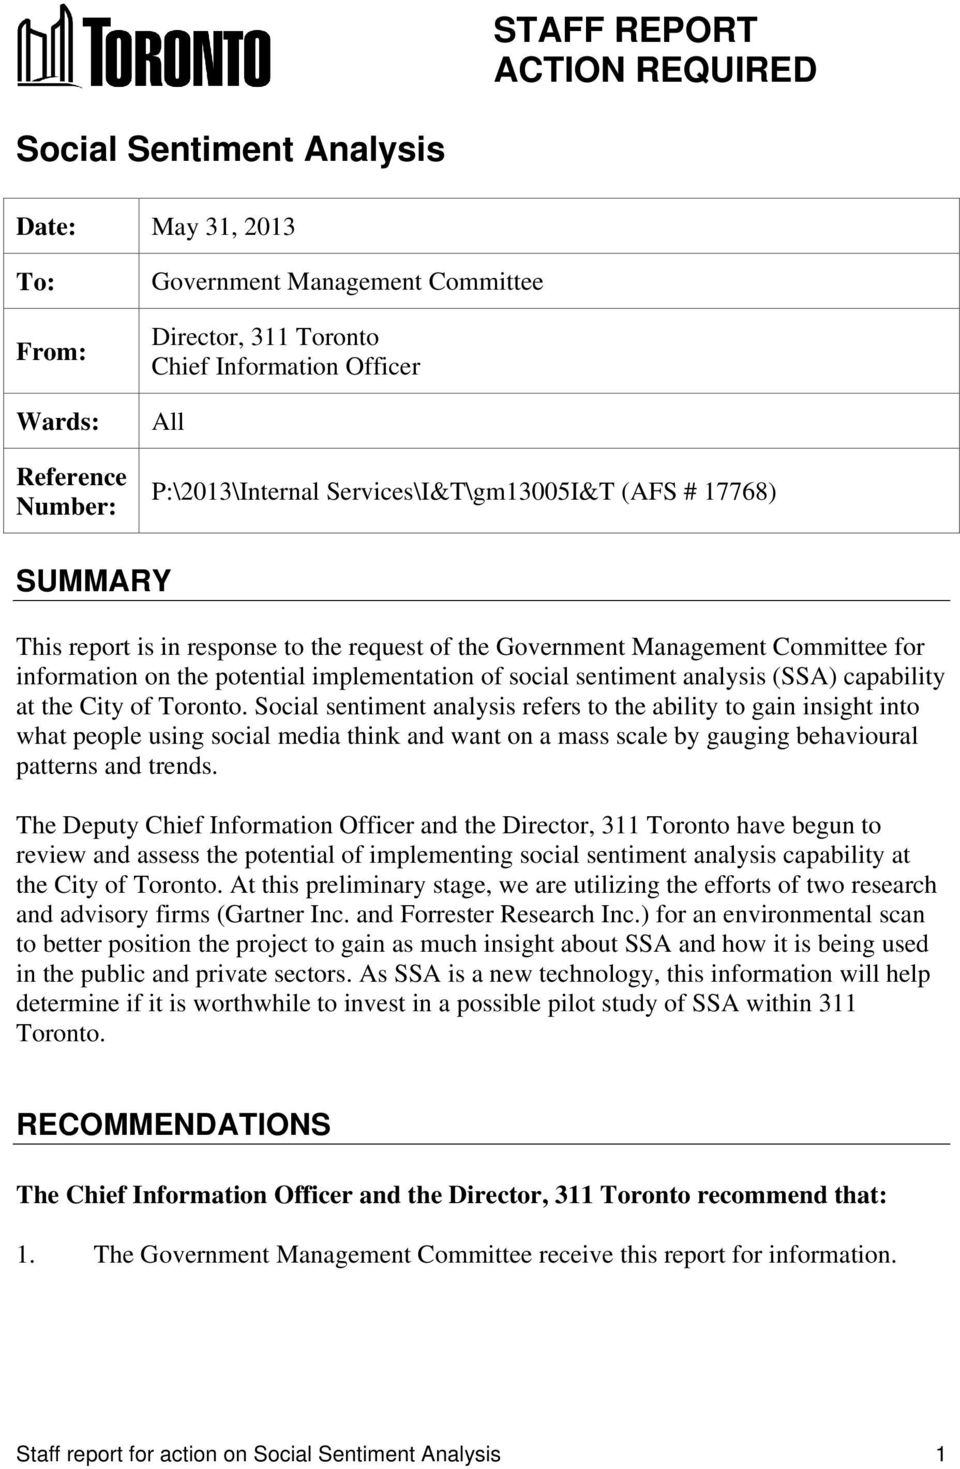 social sentiment analysis (SSA) capability at the City of Toronto.